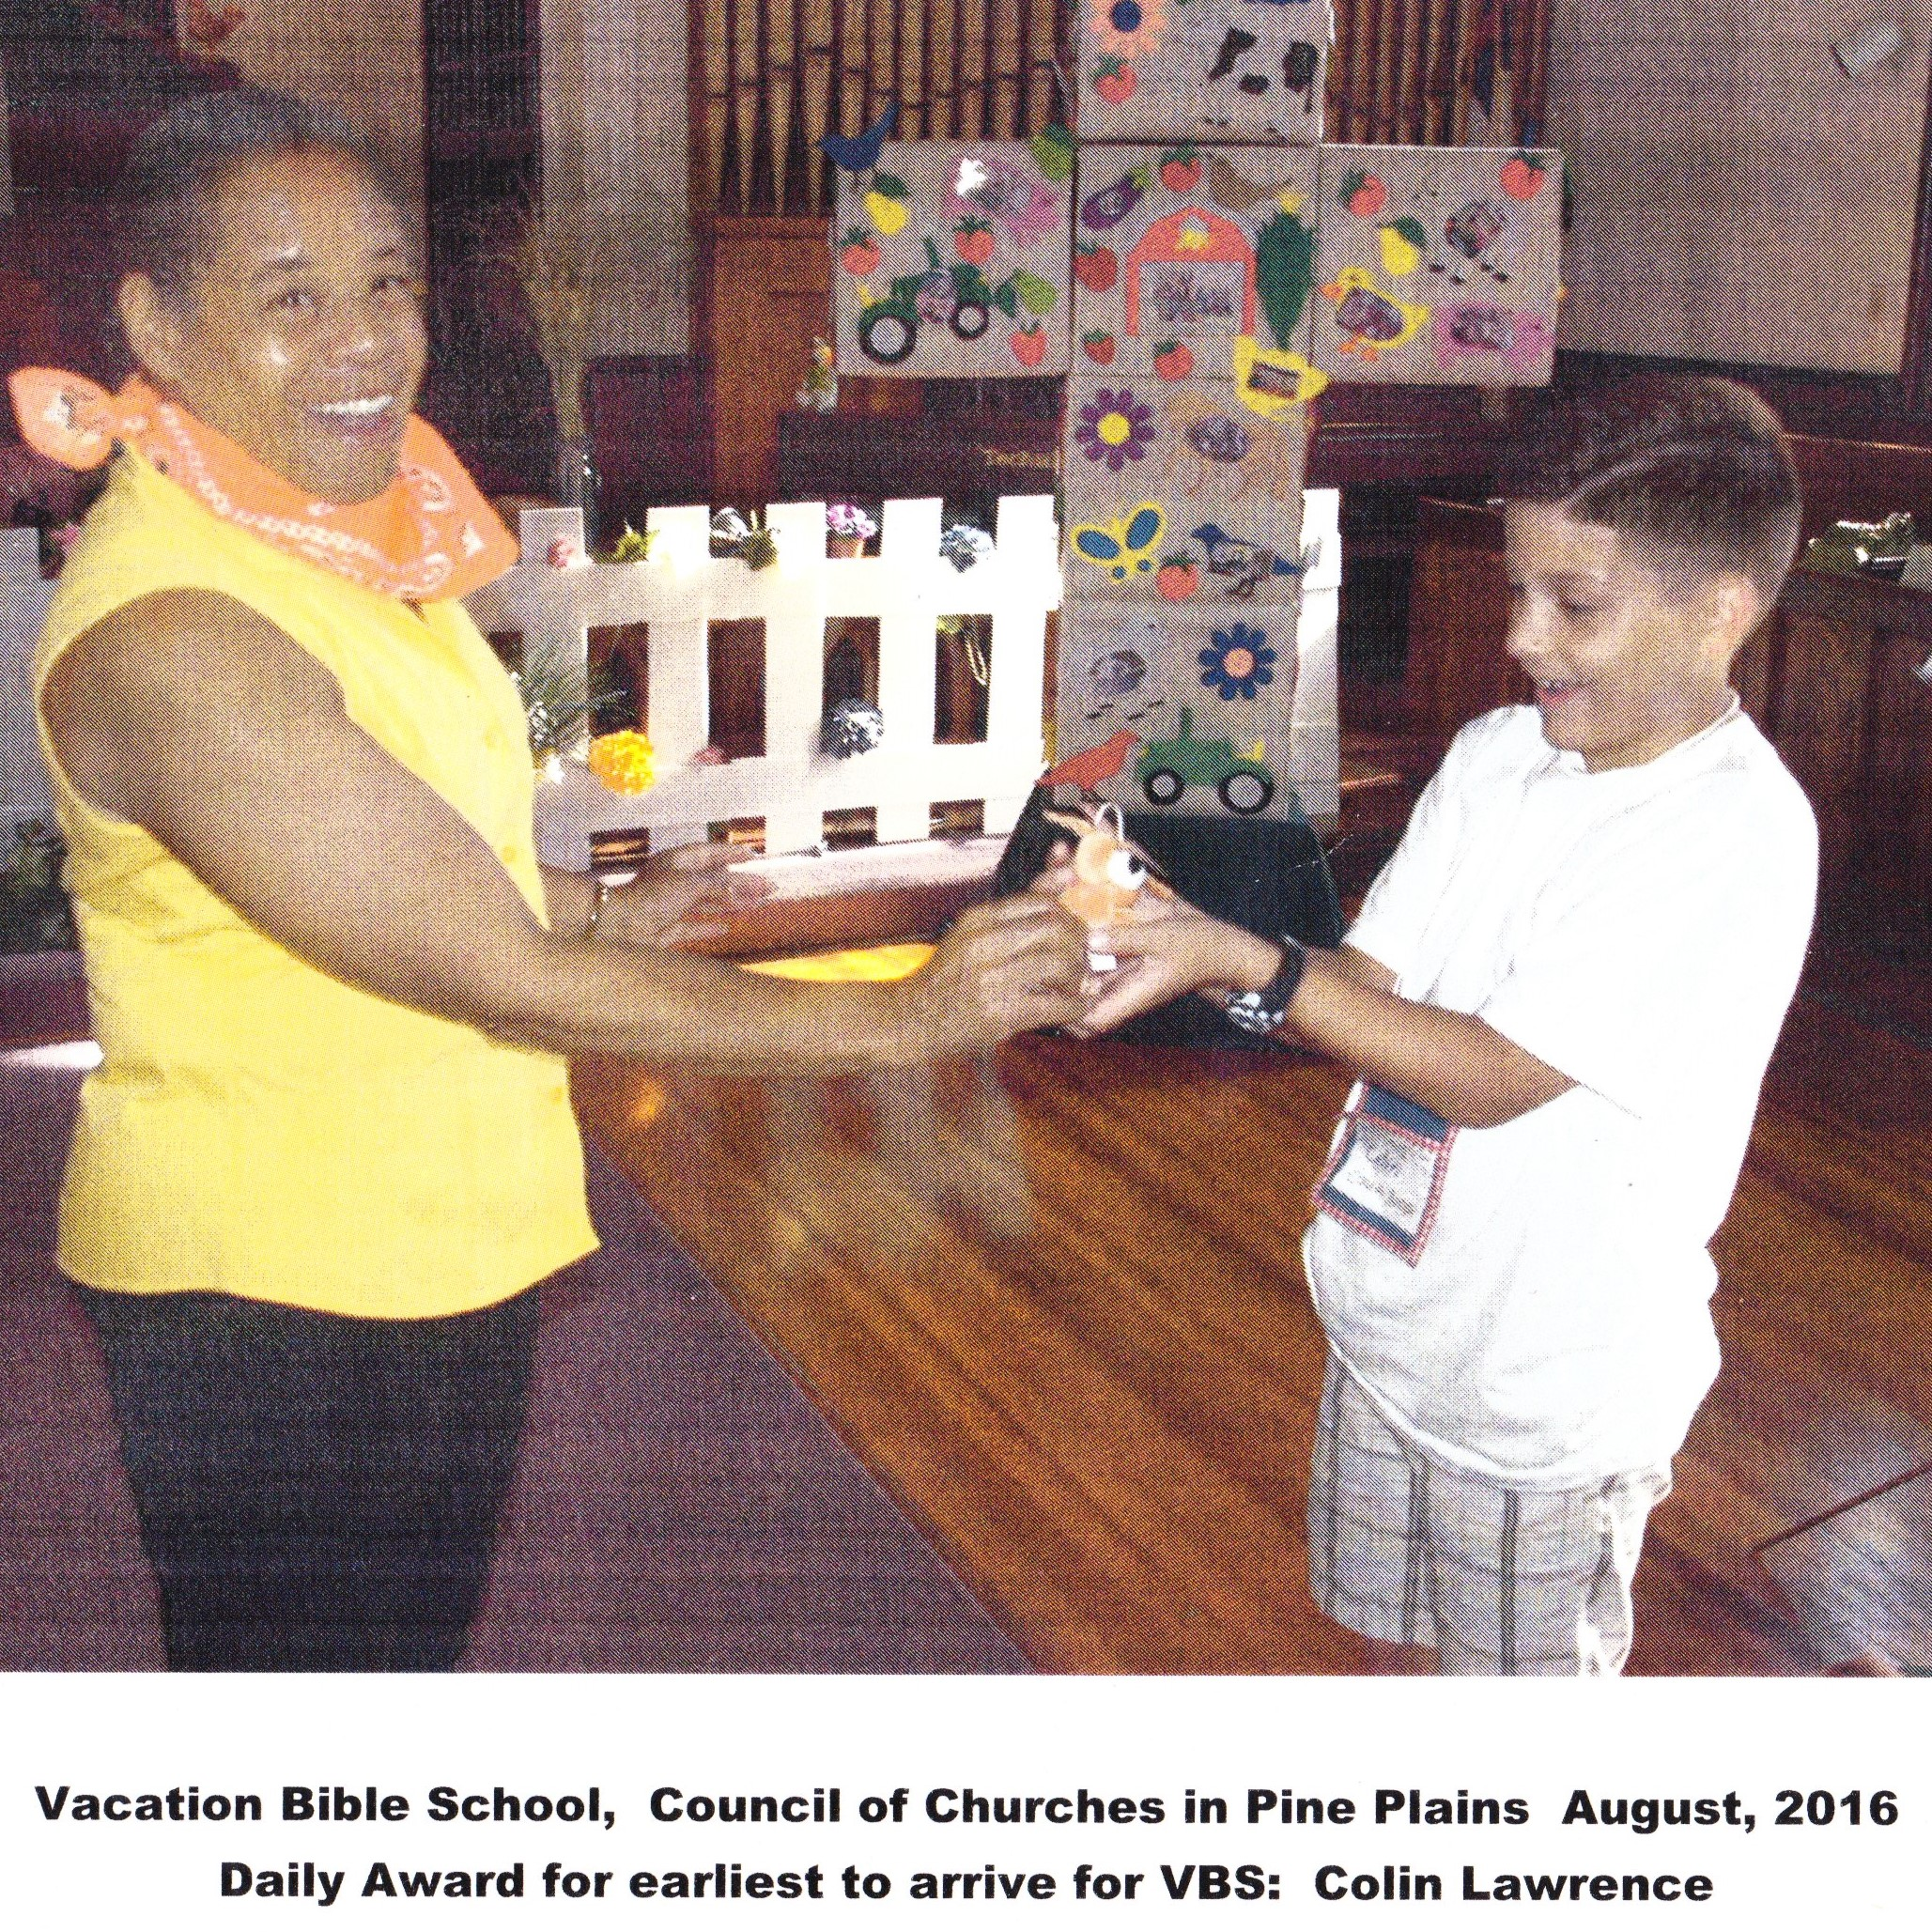 PP episcopal VBS picture (needs editting).jpeg